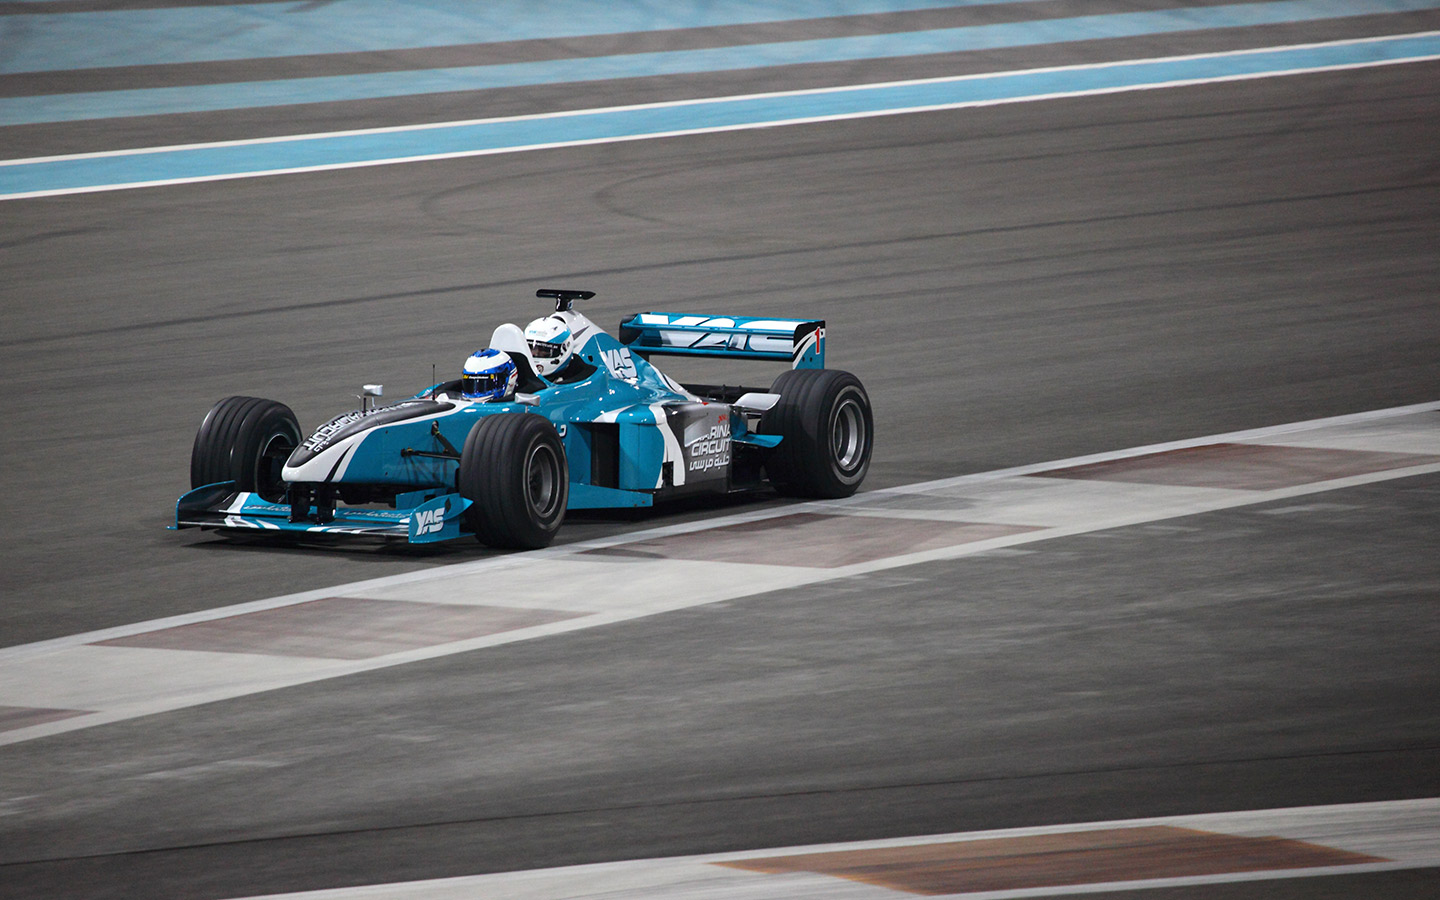 Try professional racing at the Yas Marina Circuit